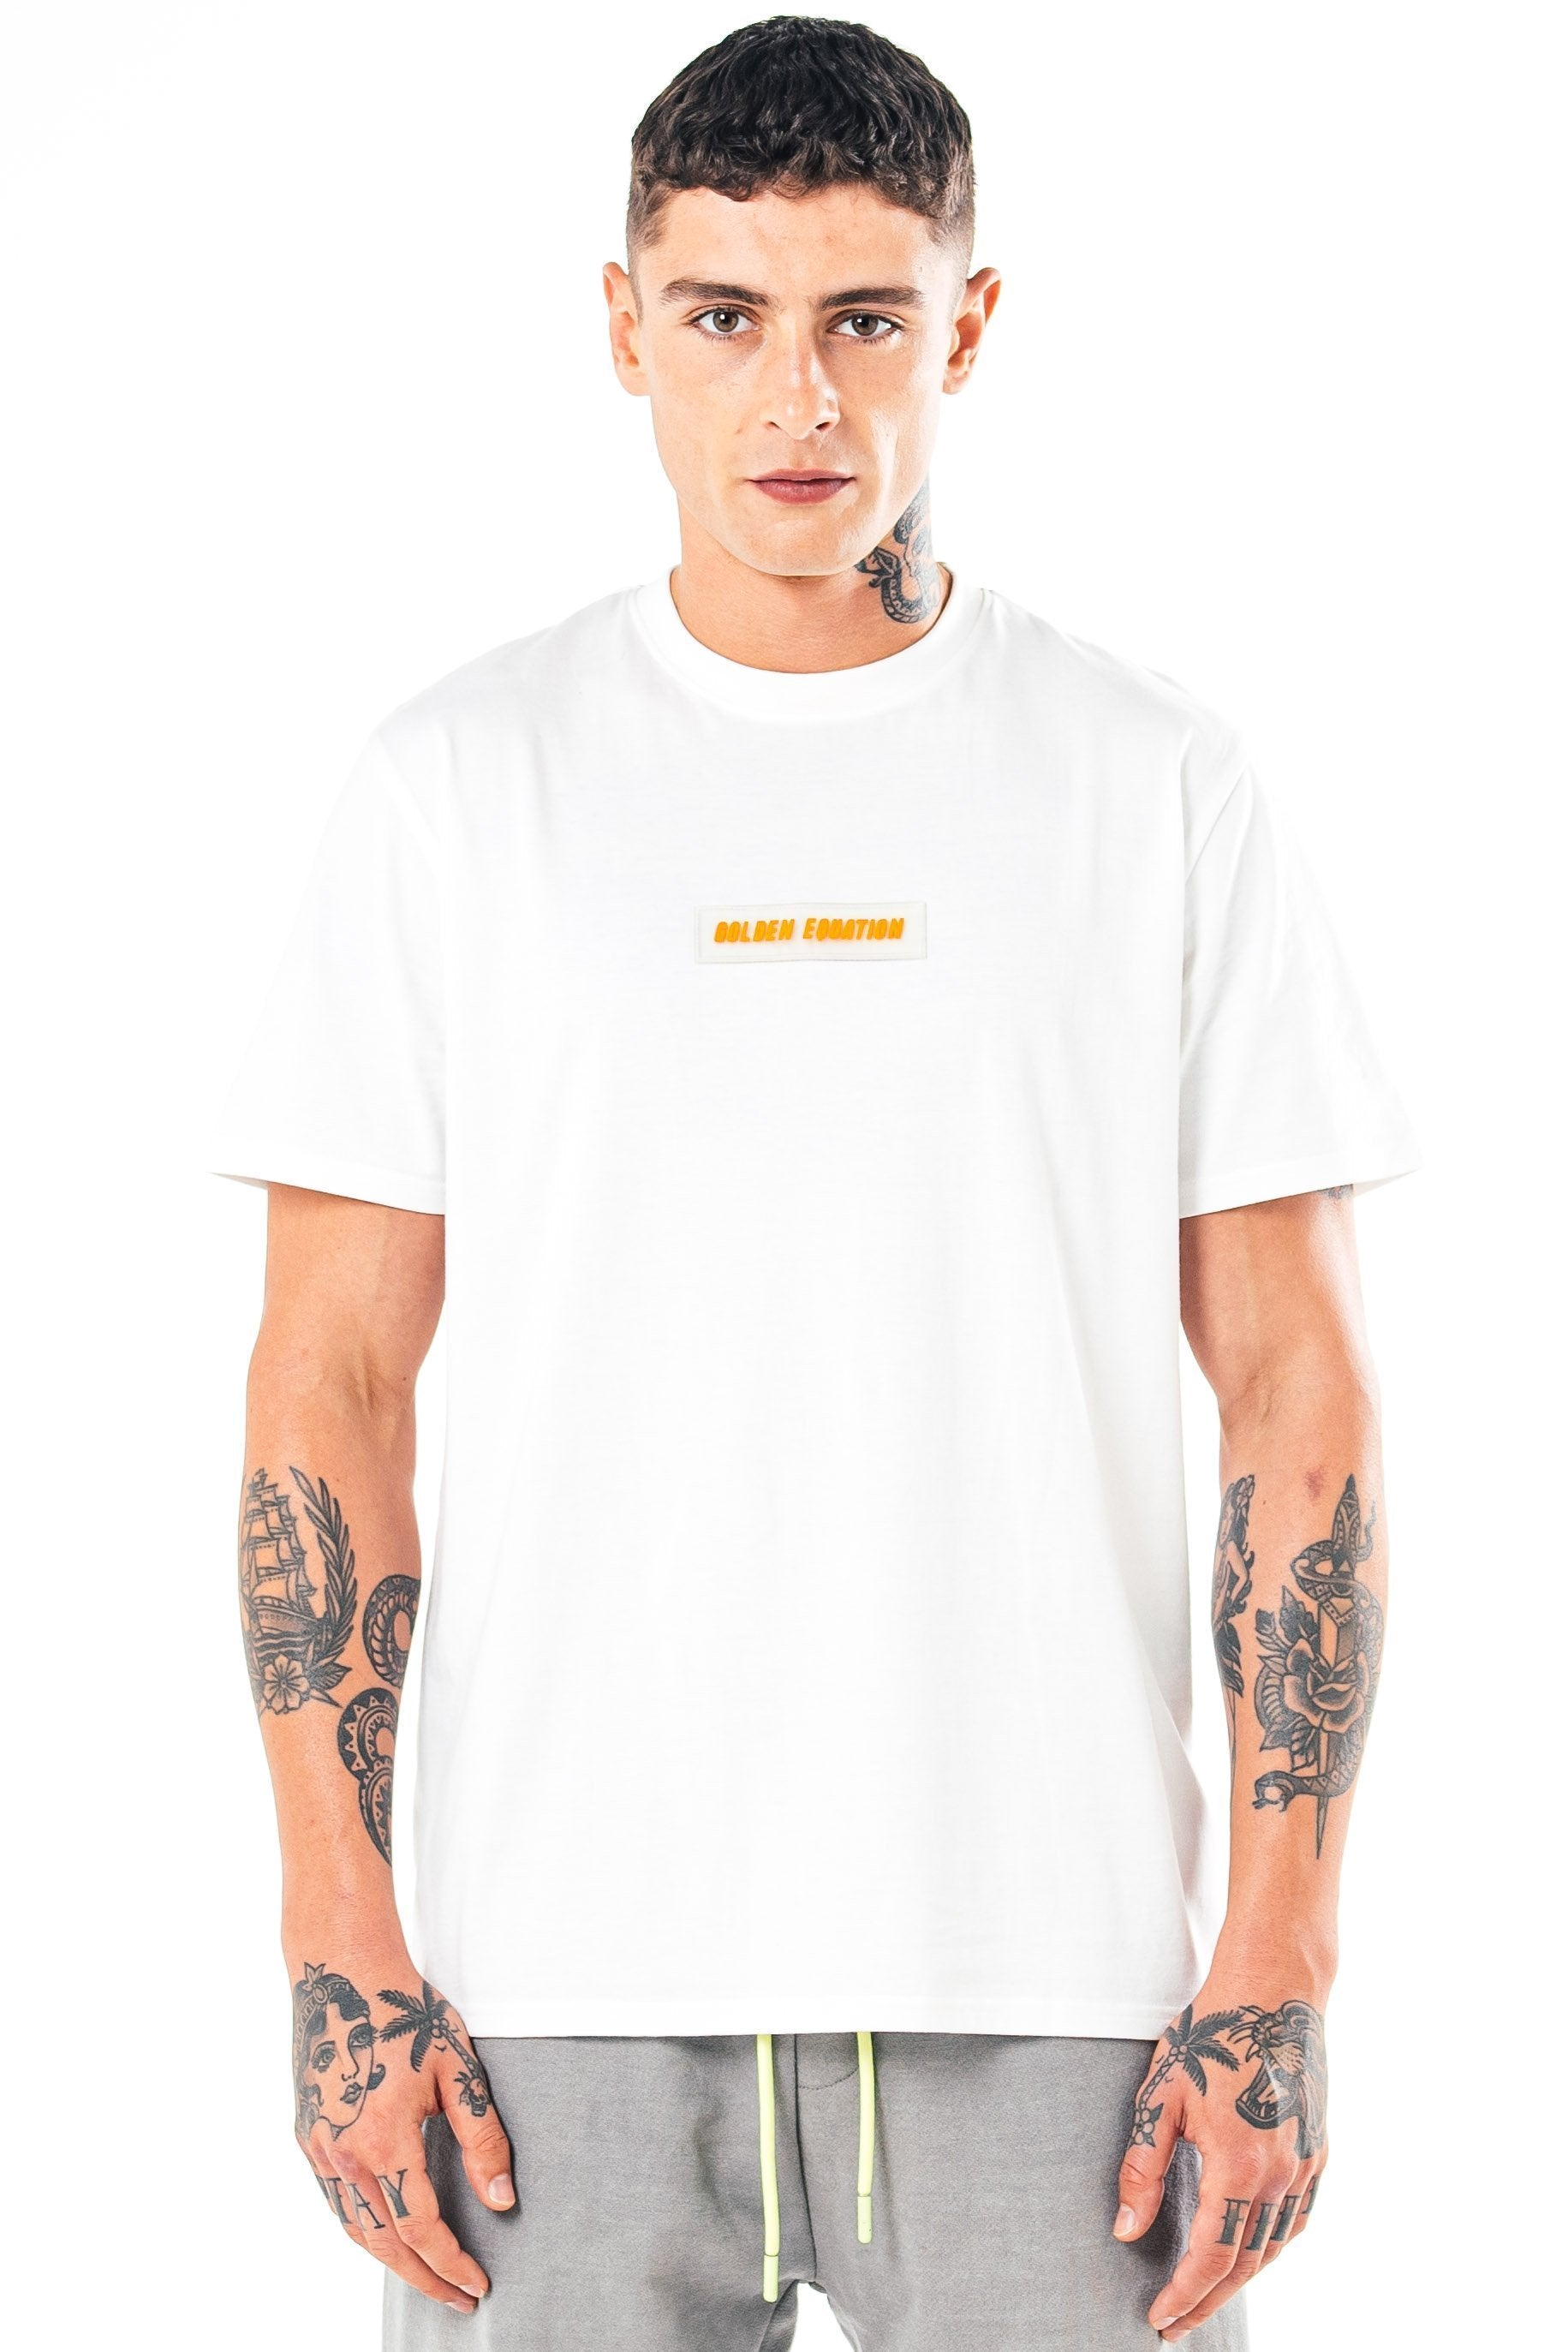 Golden Equation Herat Box Fit Men's T-Shirt - White, Small